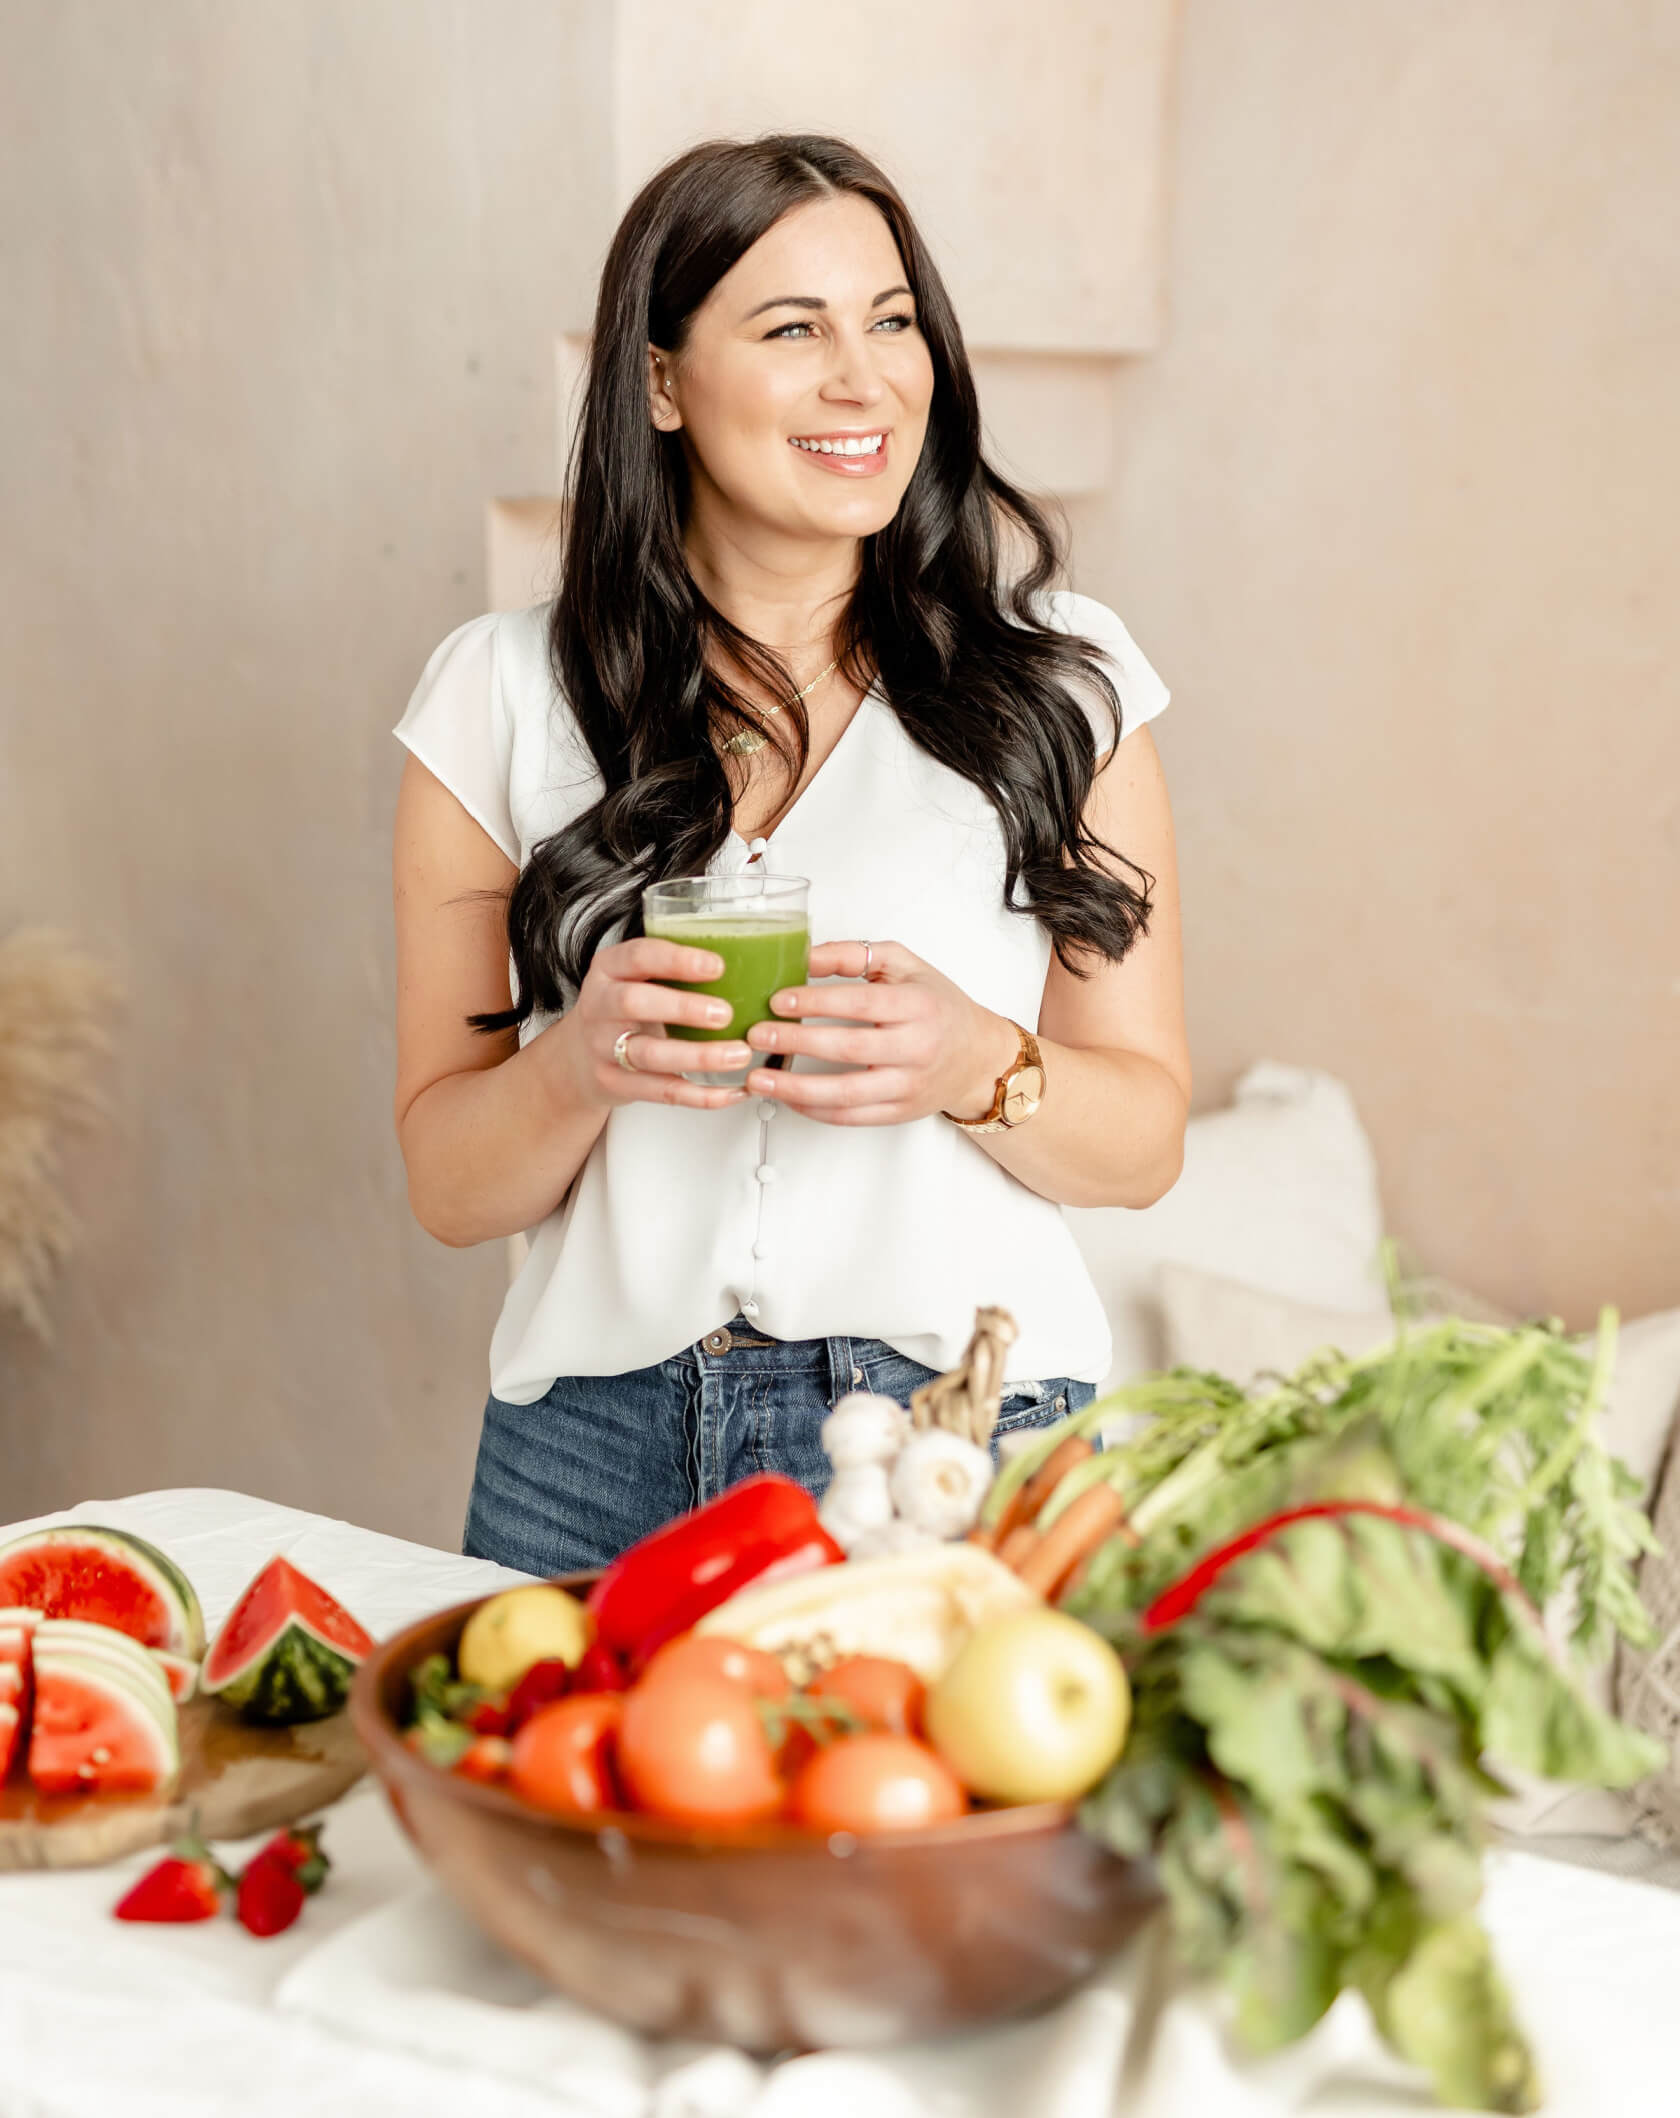 Rachelle is a food blogger holding a green smoothie